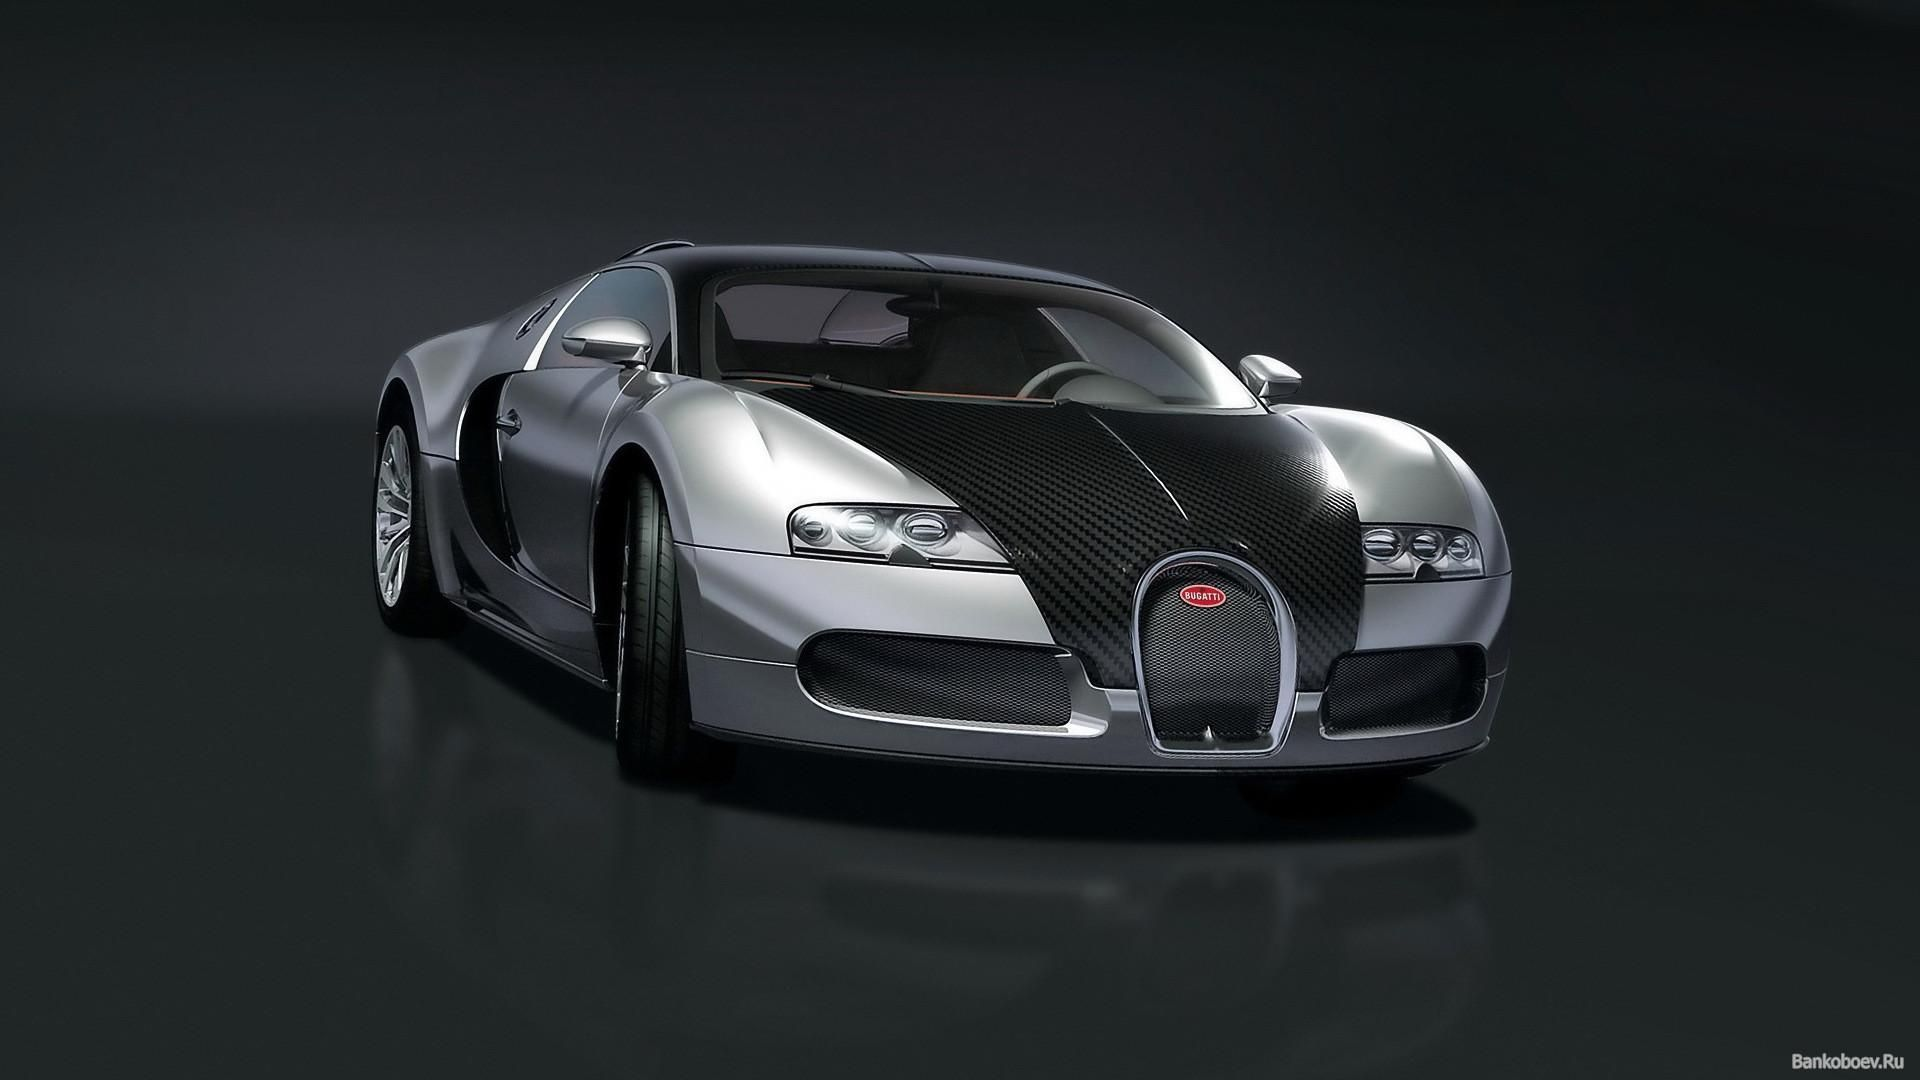 Hd Bugatti Veyron On A Black Background Wallpaper Download Free .